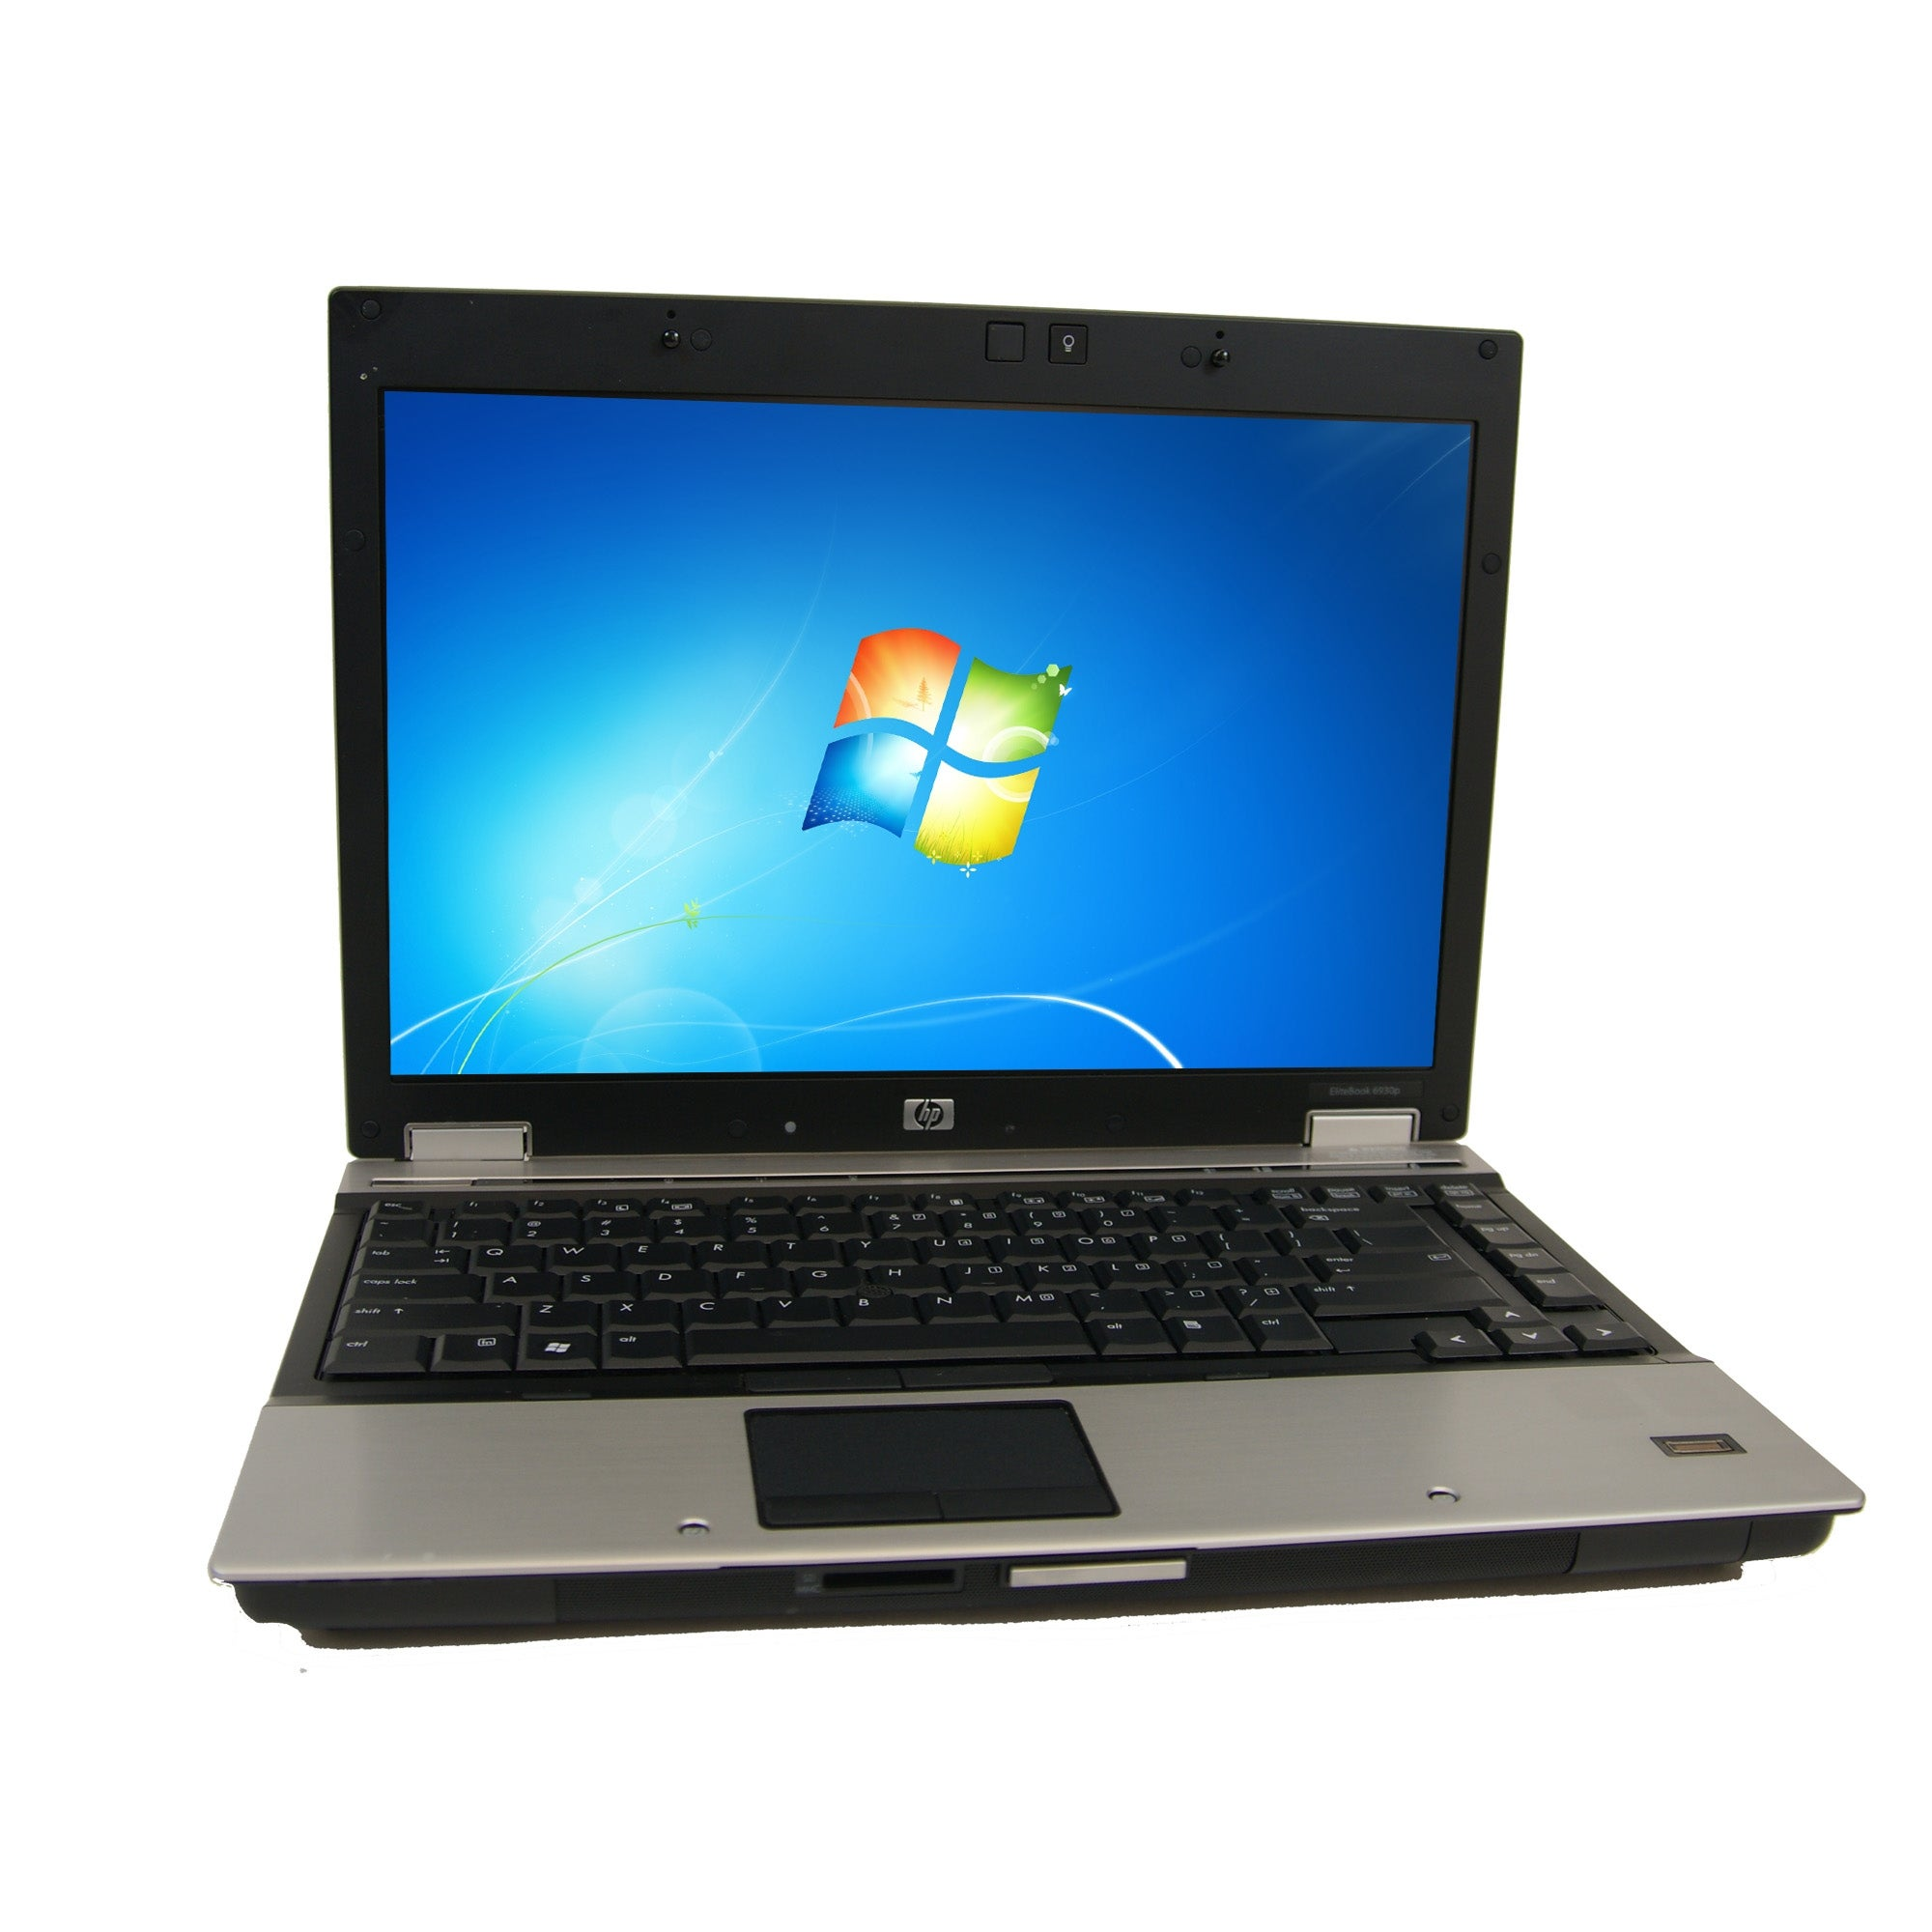 Shop HP EliteBook 6930P Core 2 Duo 2.53GHz 4GB RAM 160GB HDD DVD-RW Windows  10 Pro 14-inch Laptop (Refurbished) - Free Shipping Today - Overstock.com -  ...